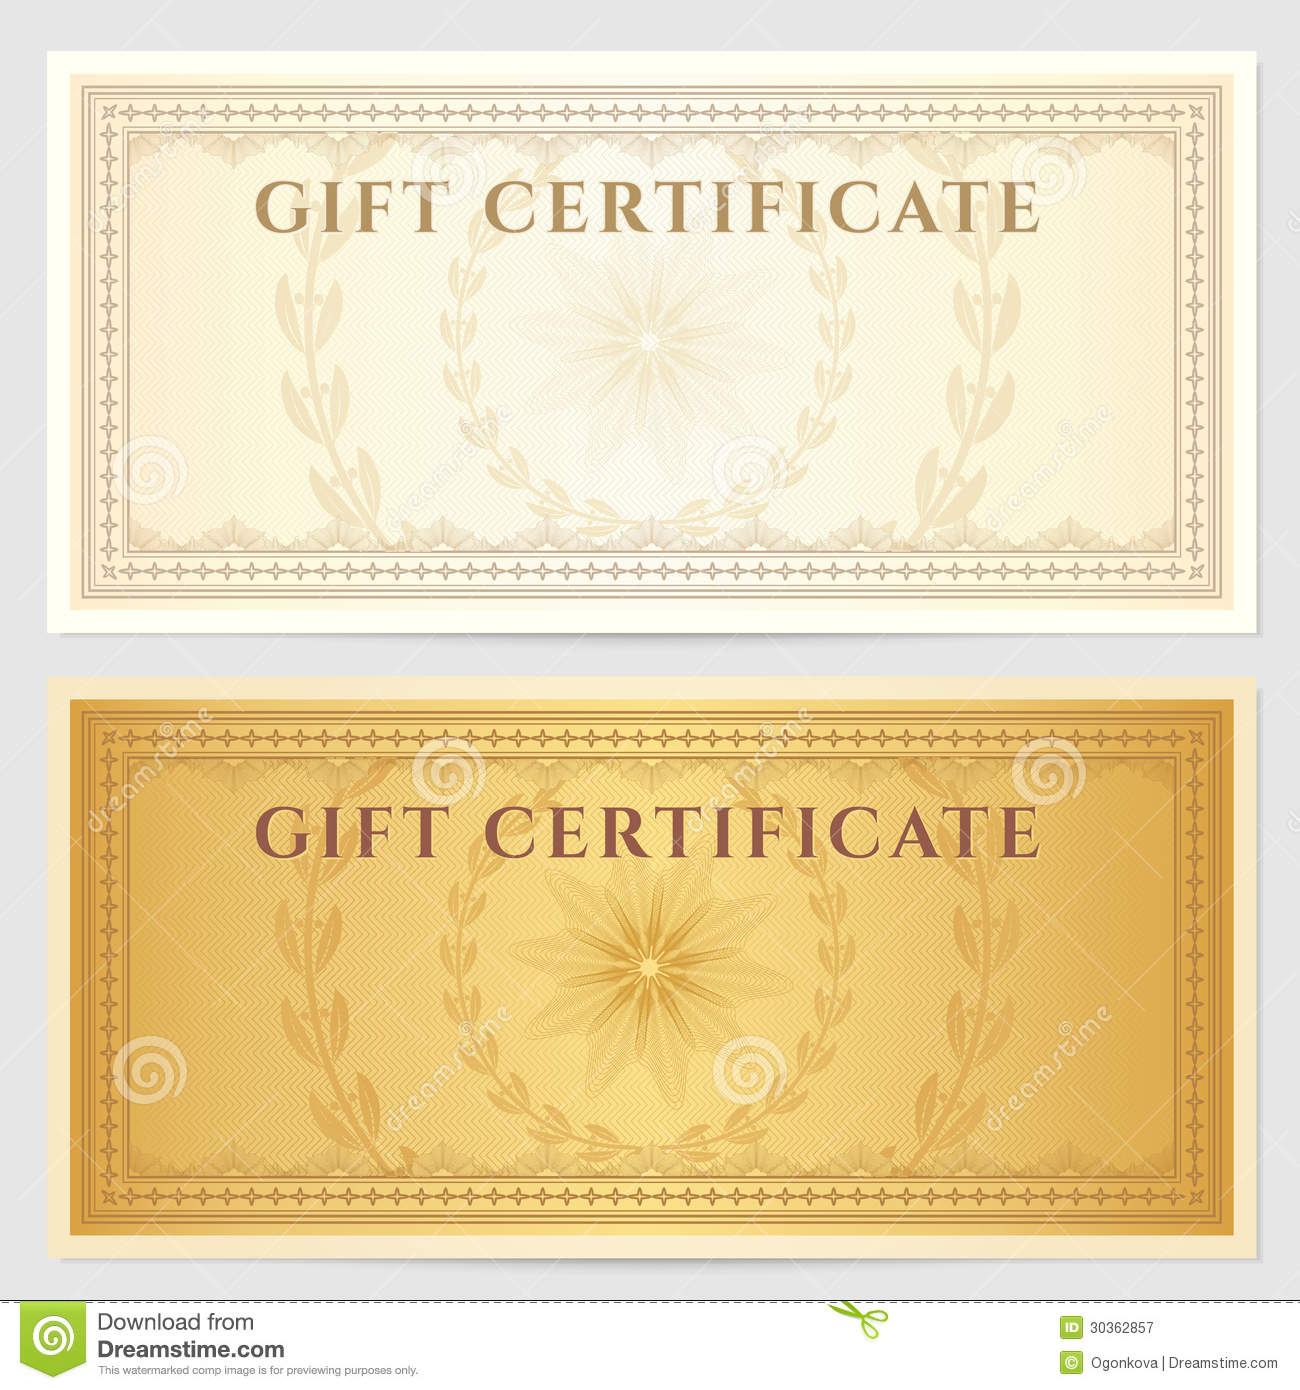 Vintage Voucher Coupon Template With Border Stock Vector